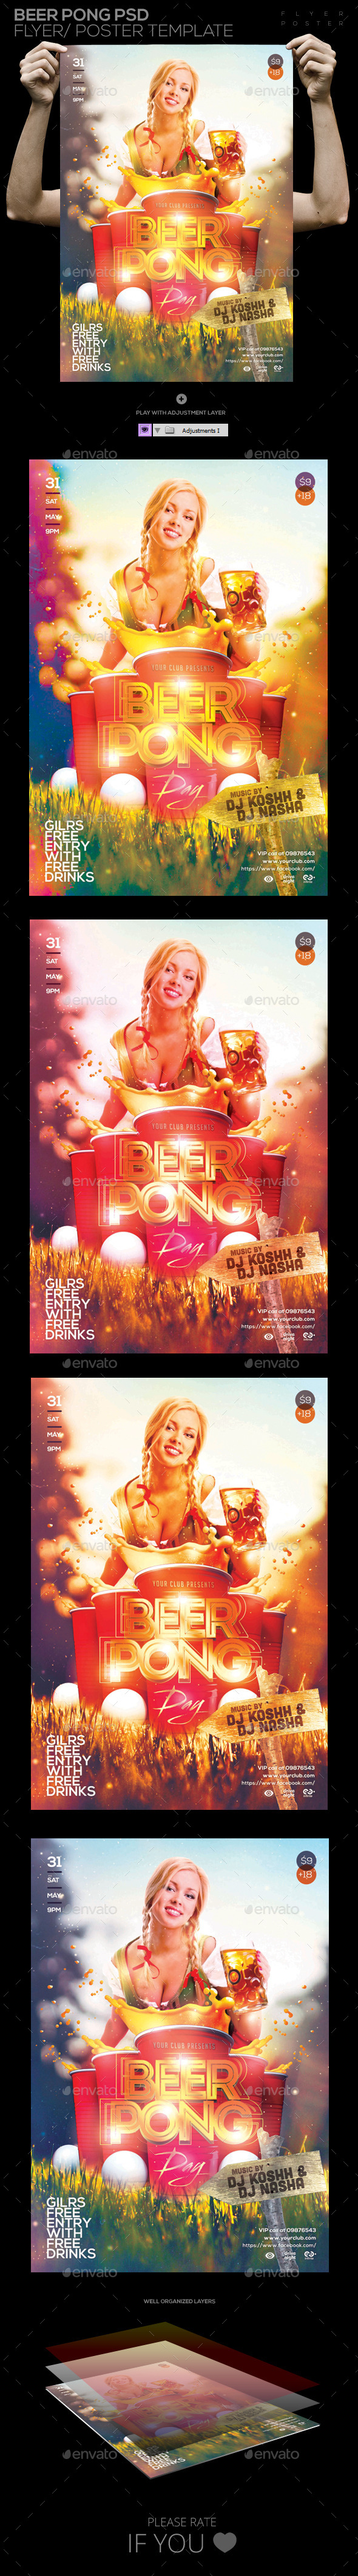 GraphicRiver Beer Pong Game Party PSD Flyer POSTER Template 11066773